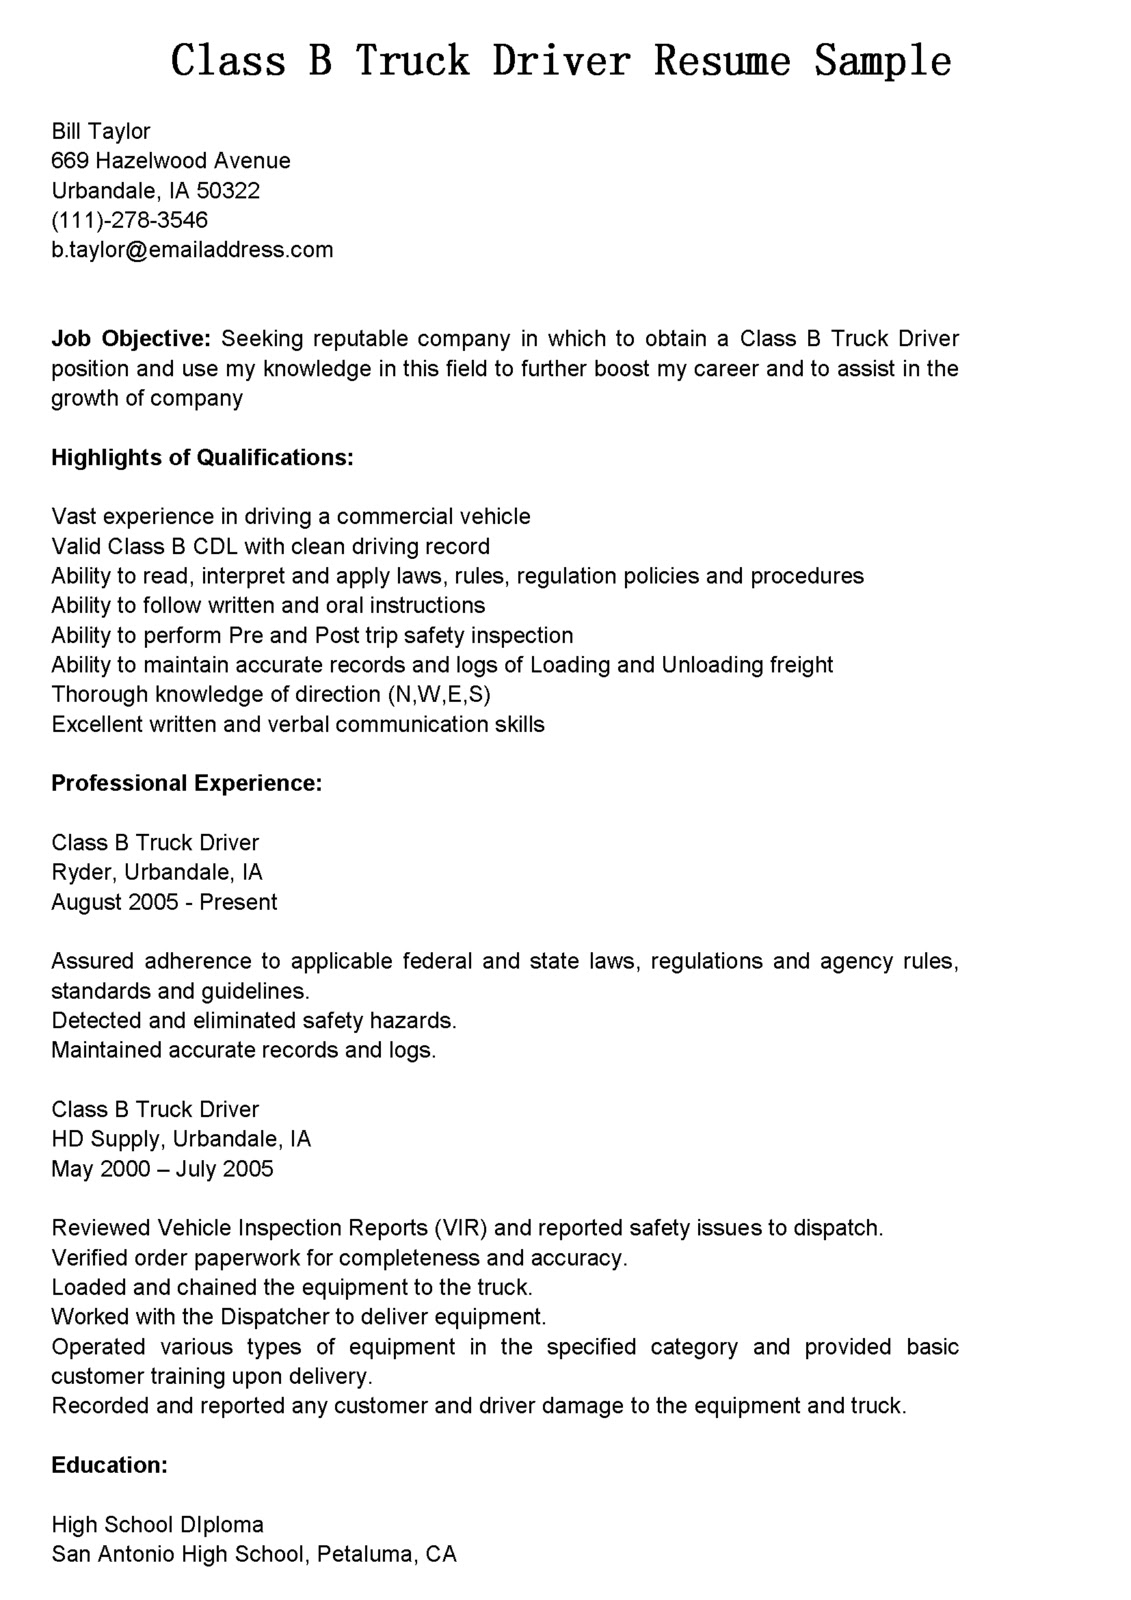 truck driver resume samples car driver sample resume truck ...